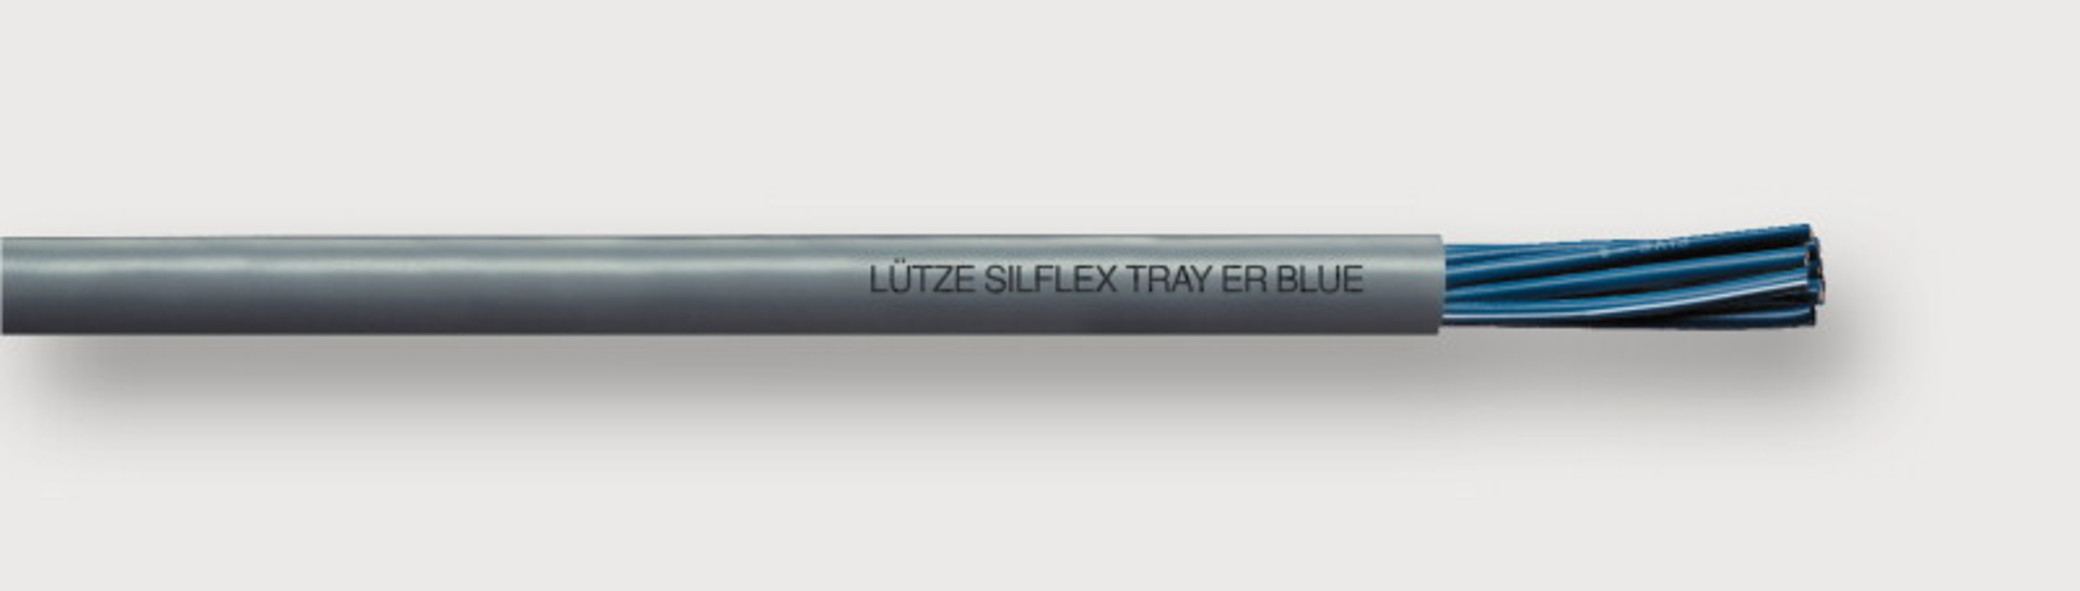 A3251807 - LÜTZE SILFLEX® Tray-ER Blue PVC with UL/TC-ER/CE Approvals, Blue Conductors for 24 V Applications